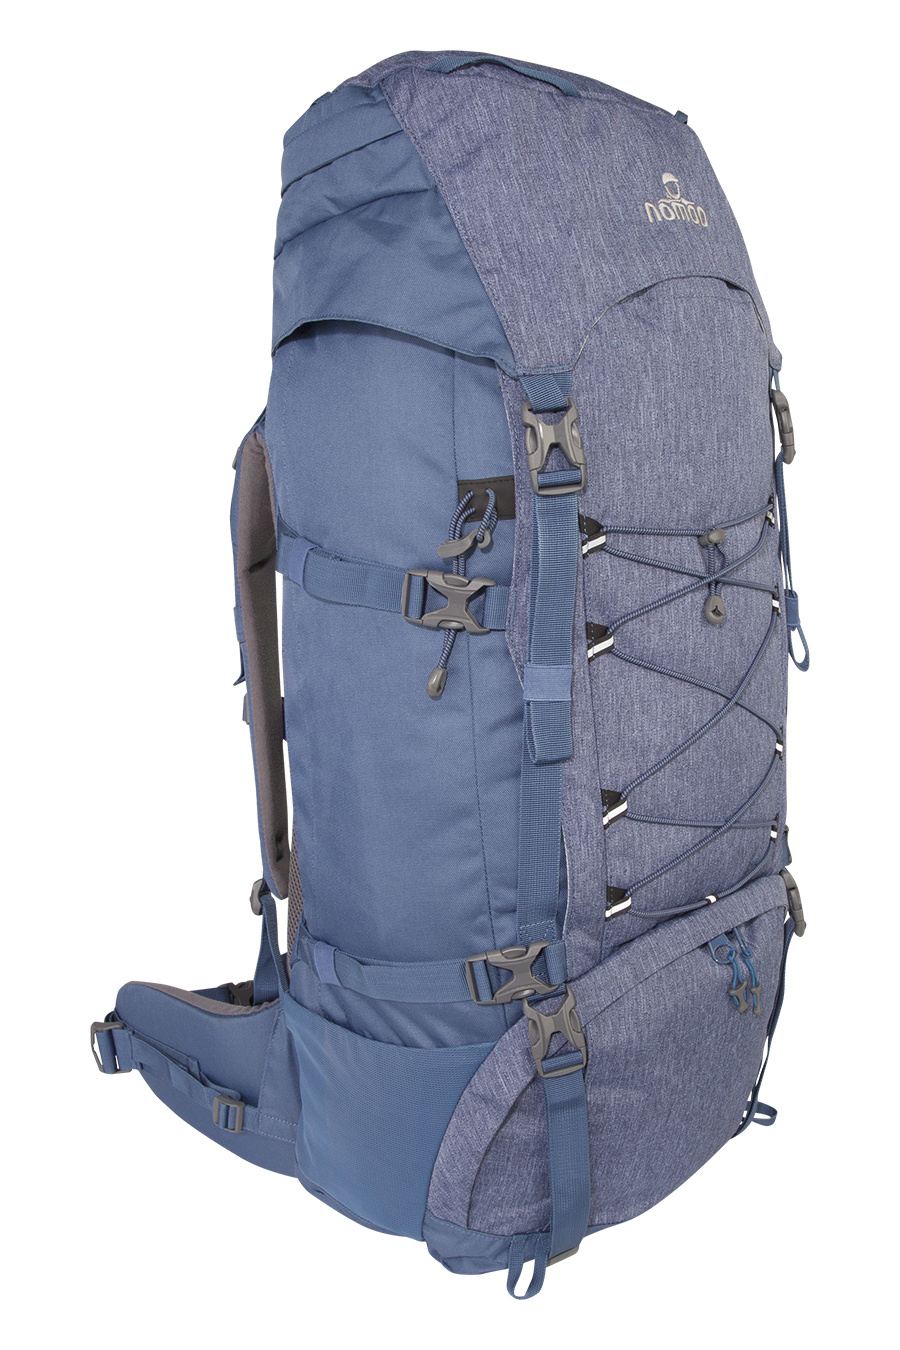 Nomad Karoo SF 55l backpack dames - Steel